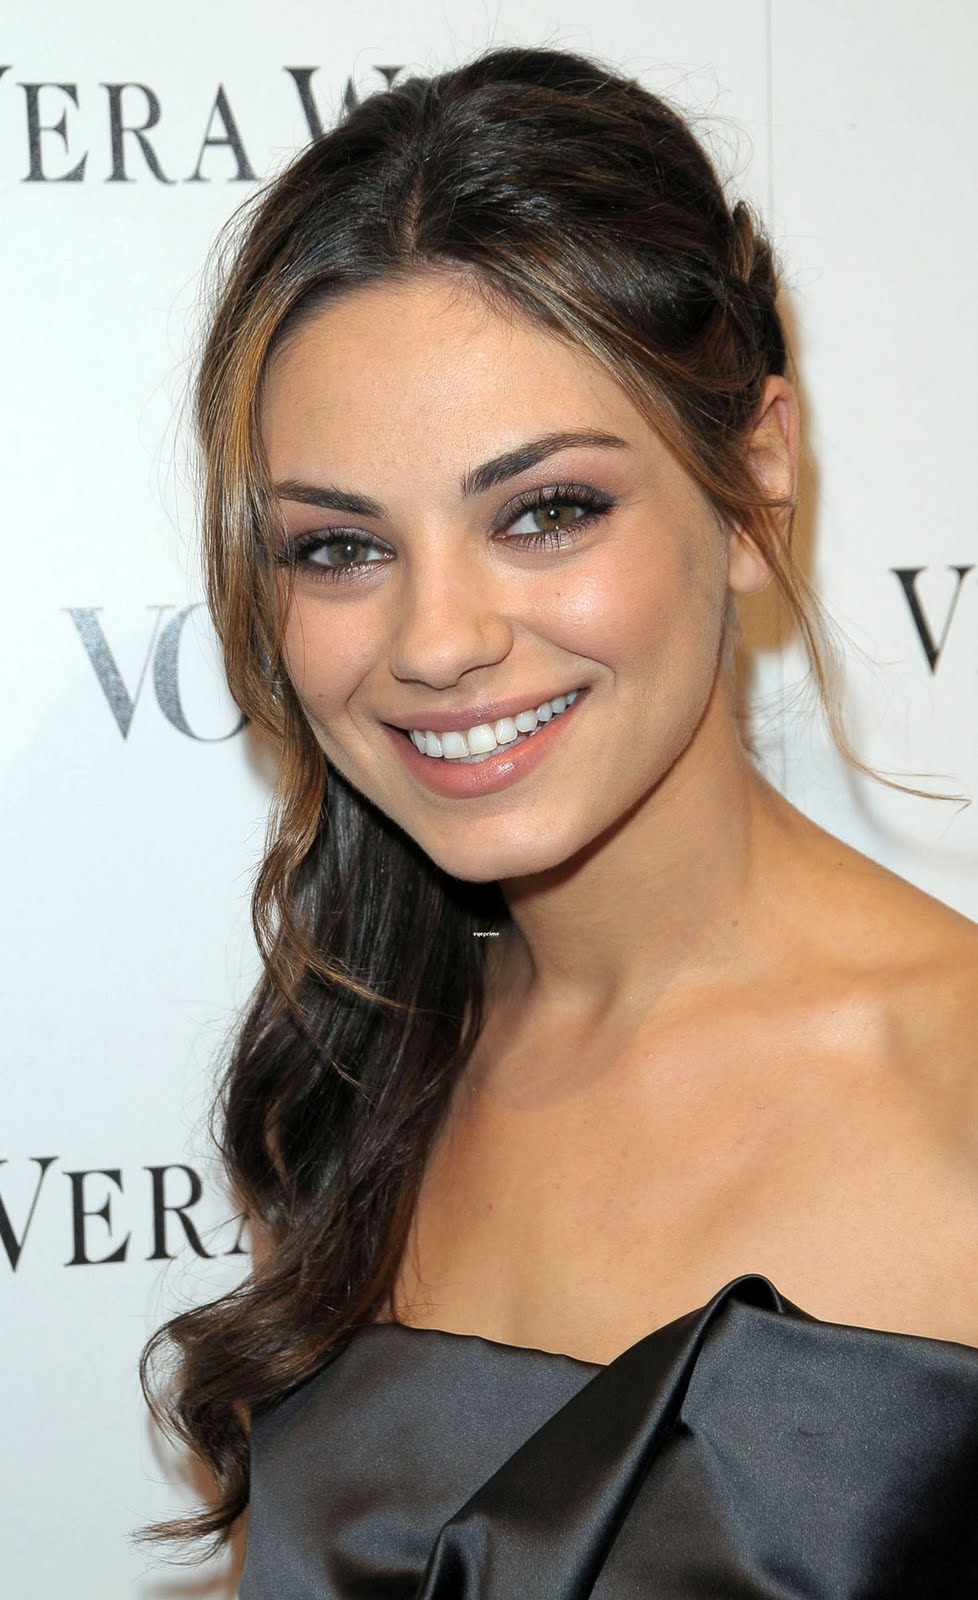 Wallpaper World: Mila Kunis is Beautiful and Sexy Hollywood Actress